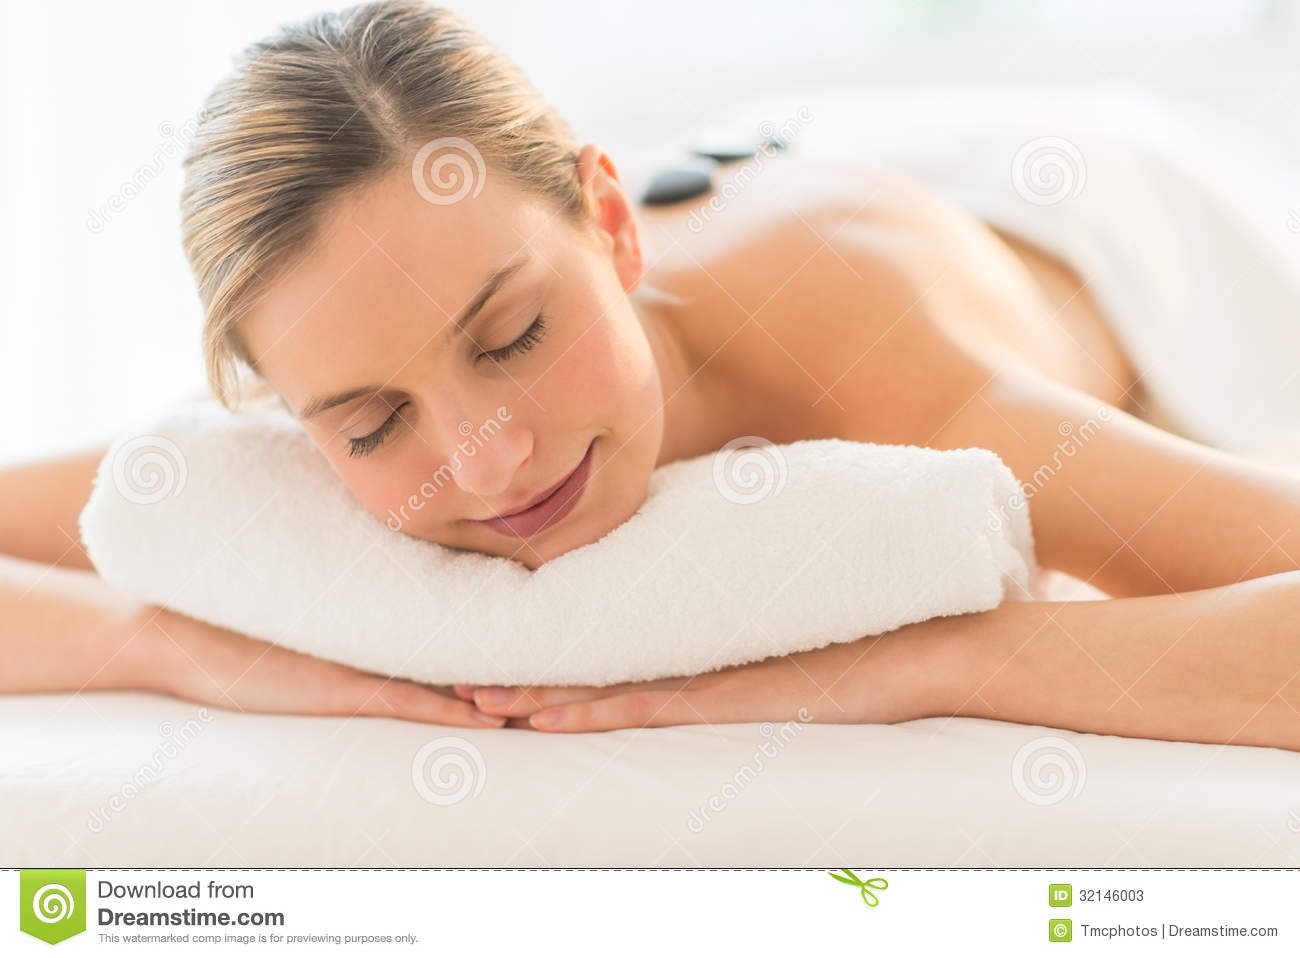 Salon Erotic Relaxed Woman Getting Hot Stone Therapy At Spa Stock